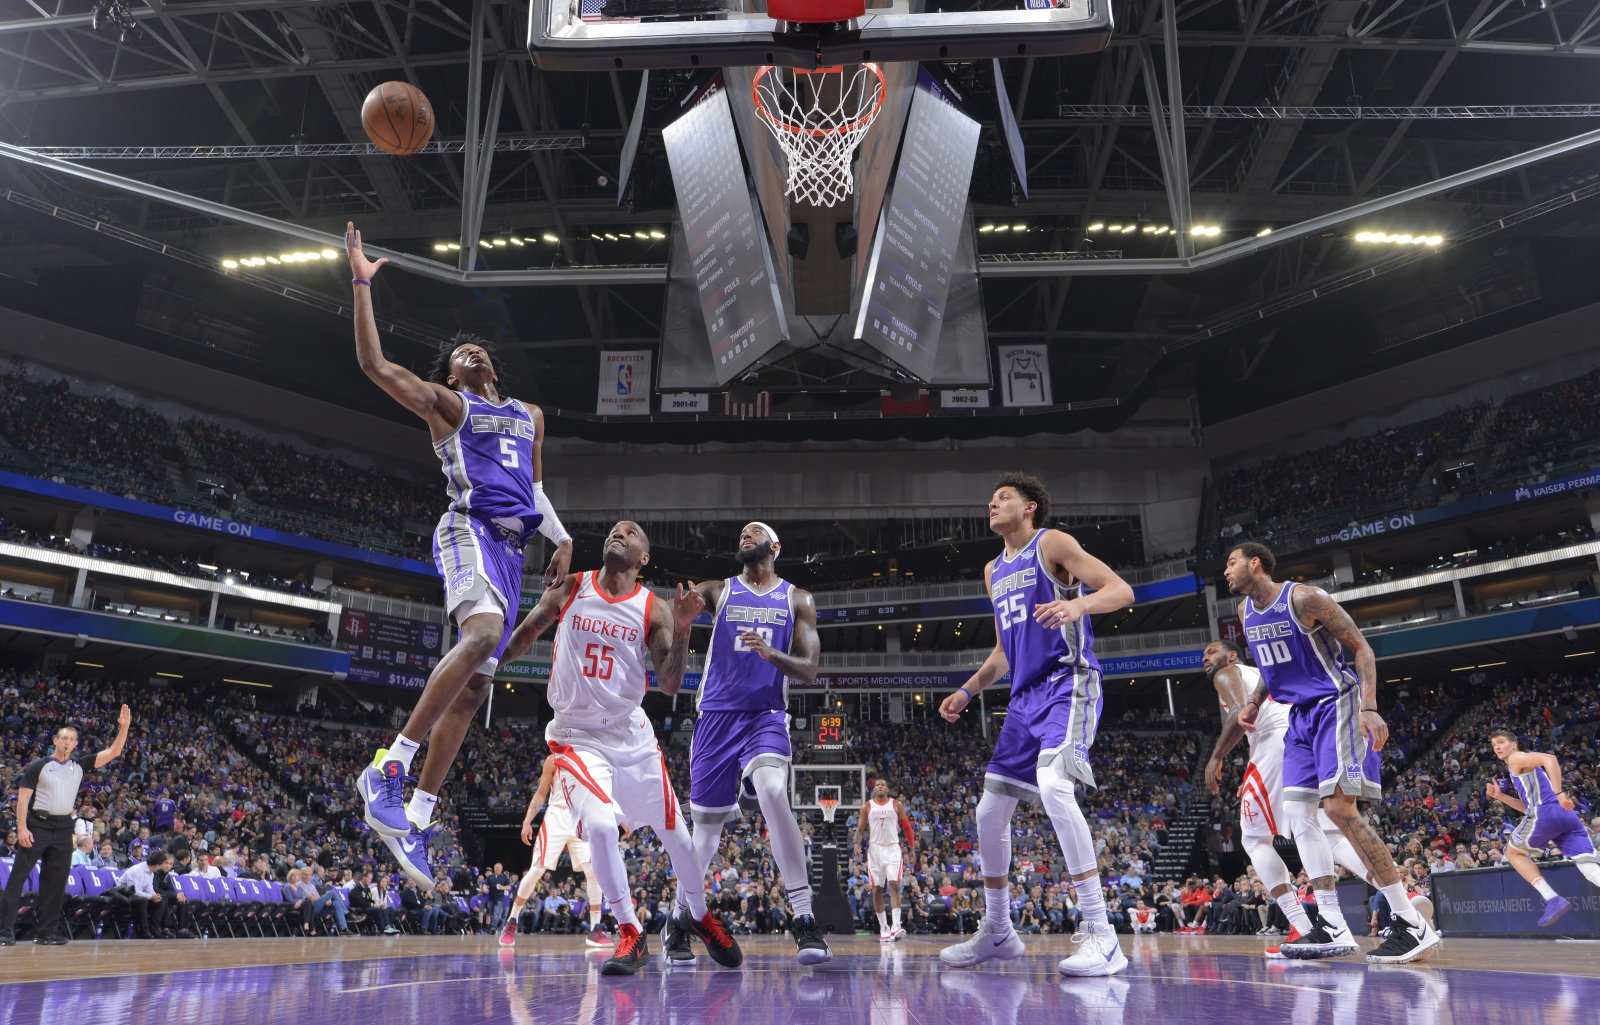 Sacramento Kings will mine cryptocurrency to support good causes | DeviceDaily.com